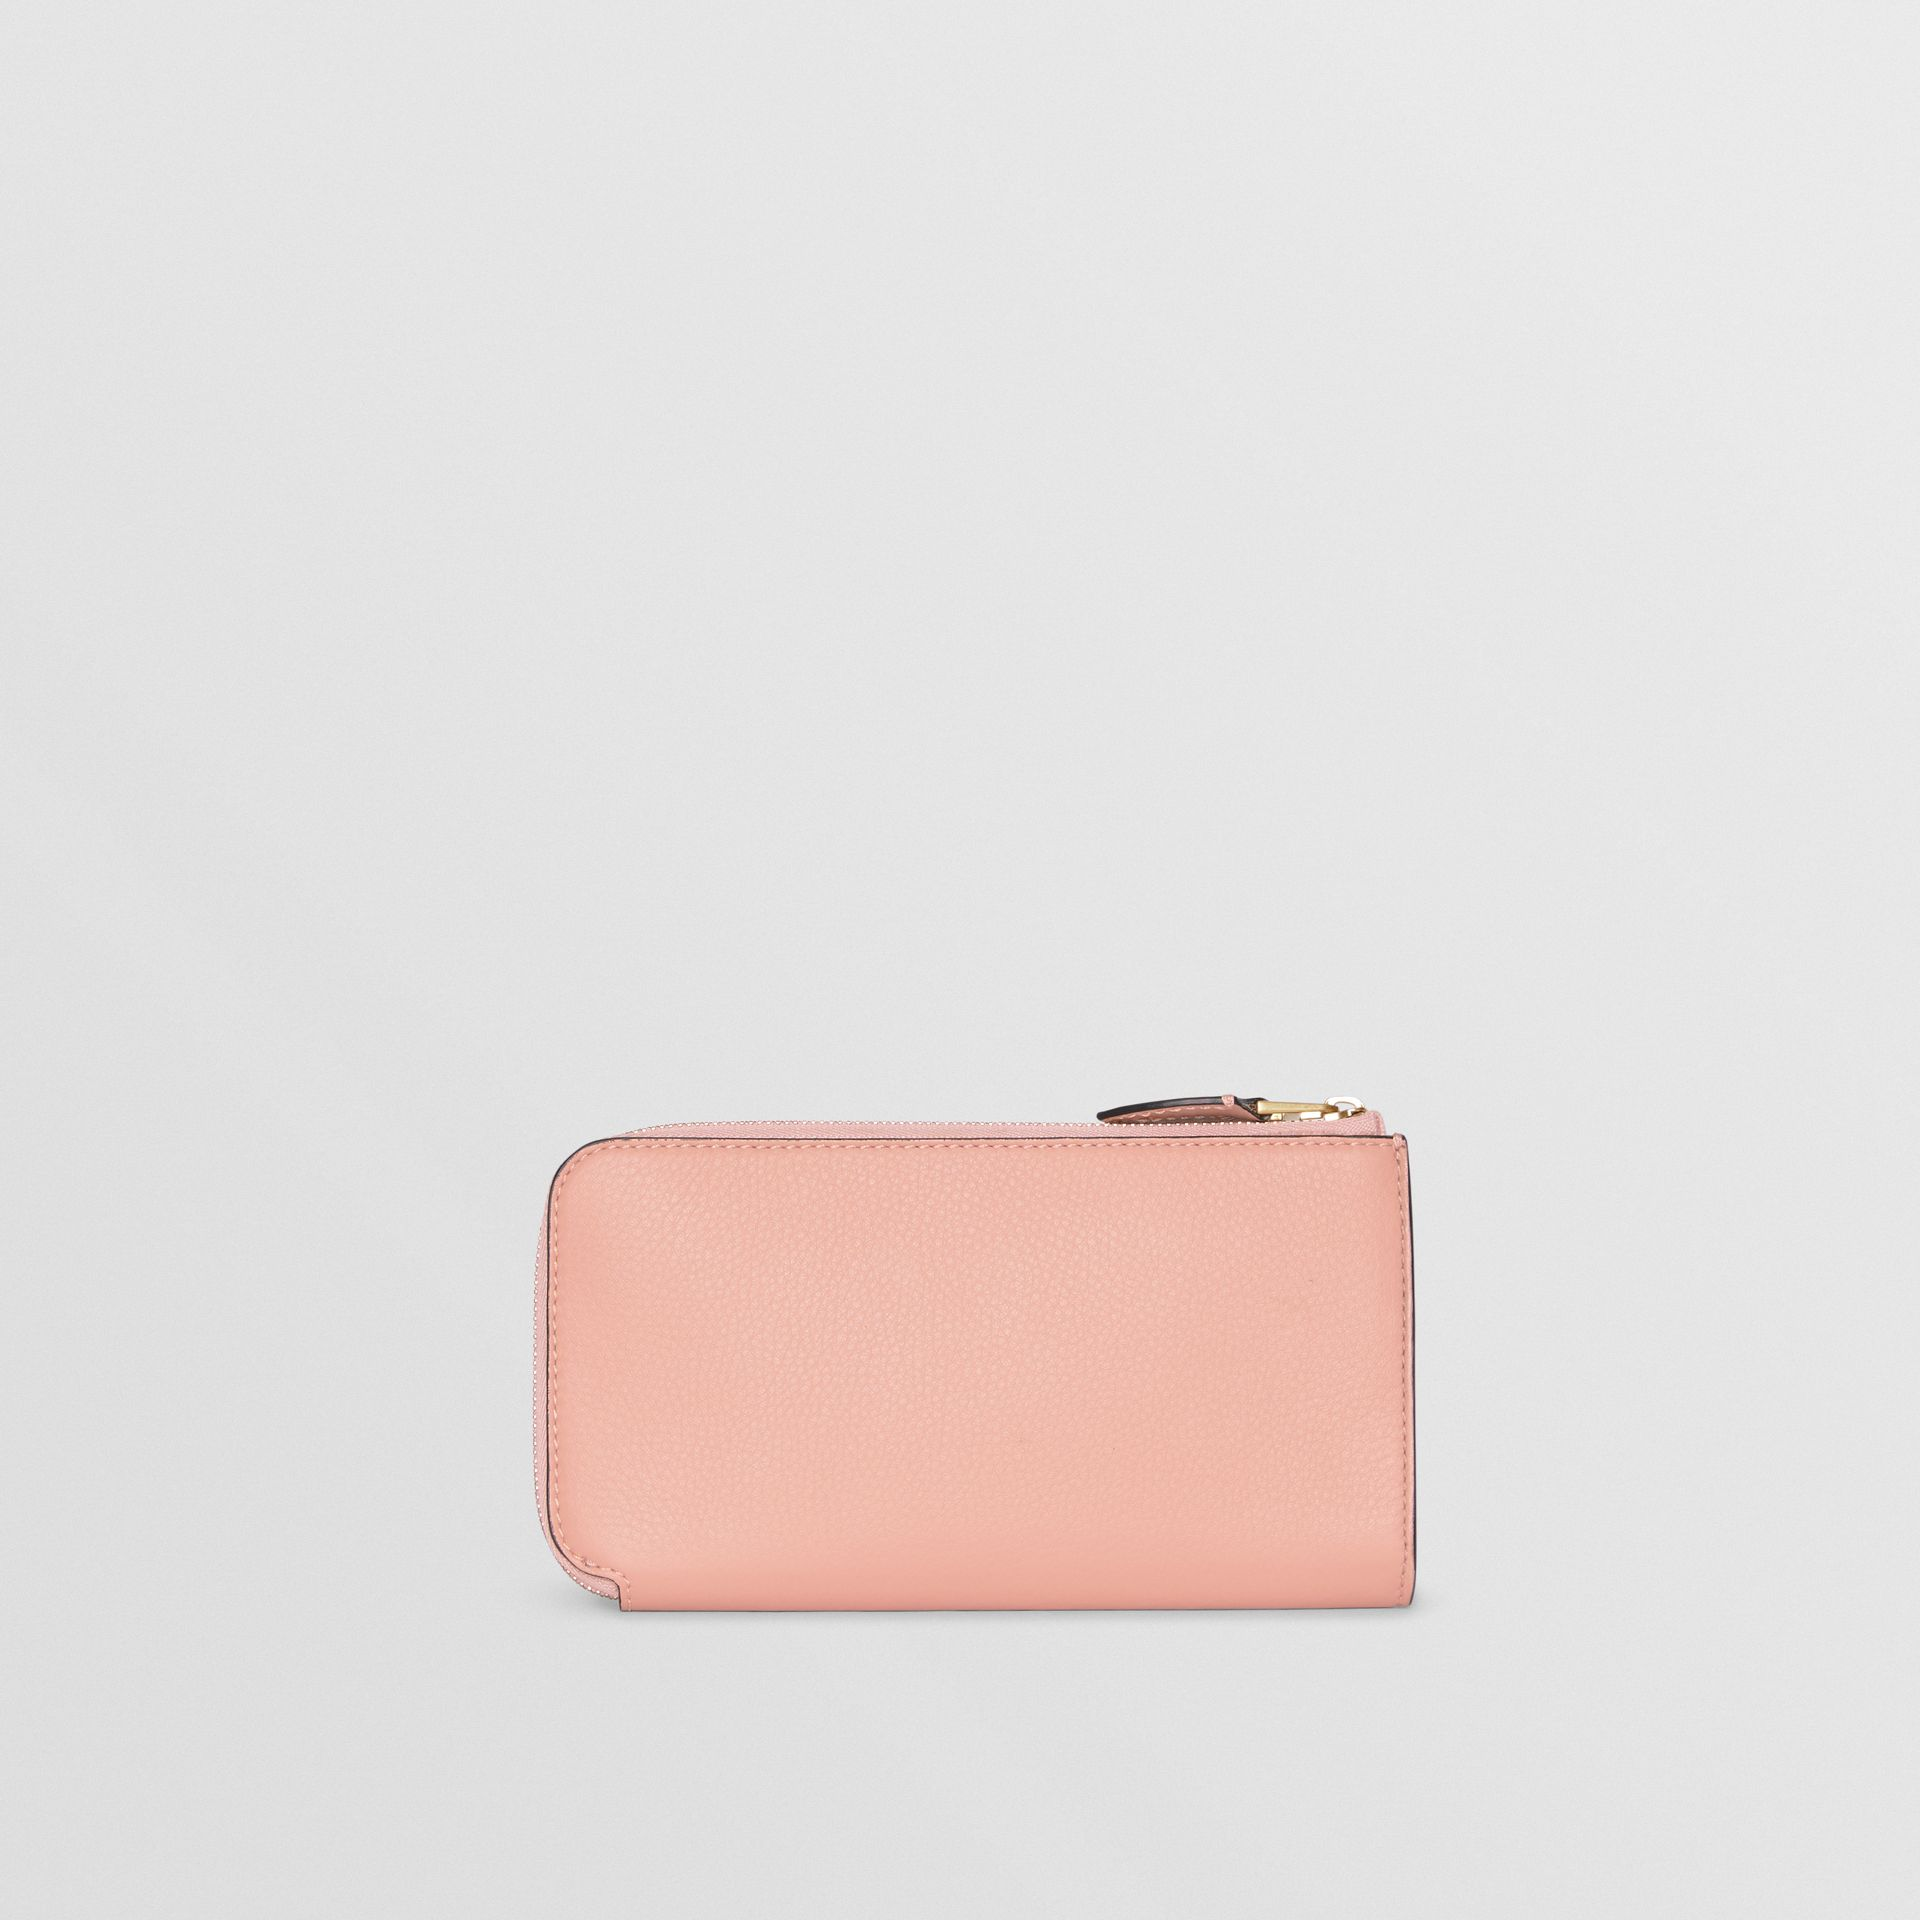 Two-tone Leather Ziparound Wallet and Coin Case in Ash Rose - Women | Burberry Hong Kong S.A.R - gallery image 6